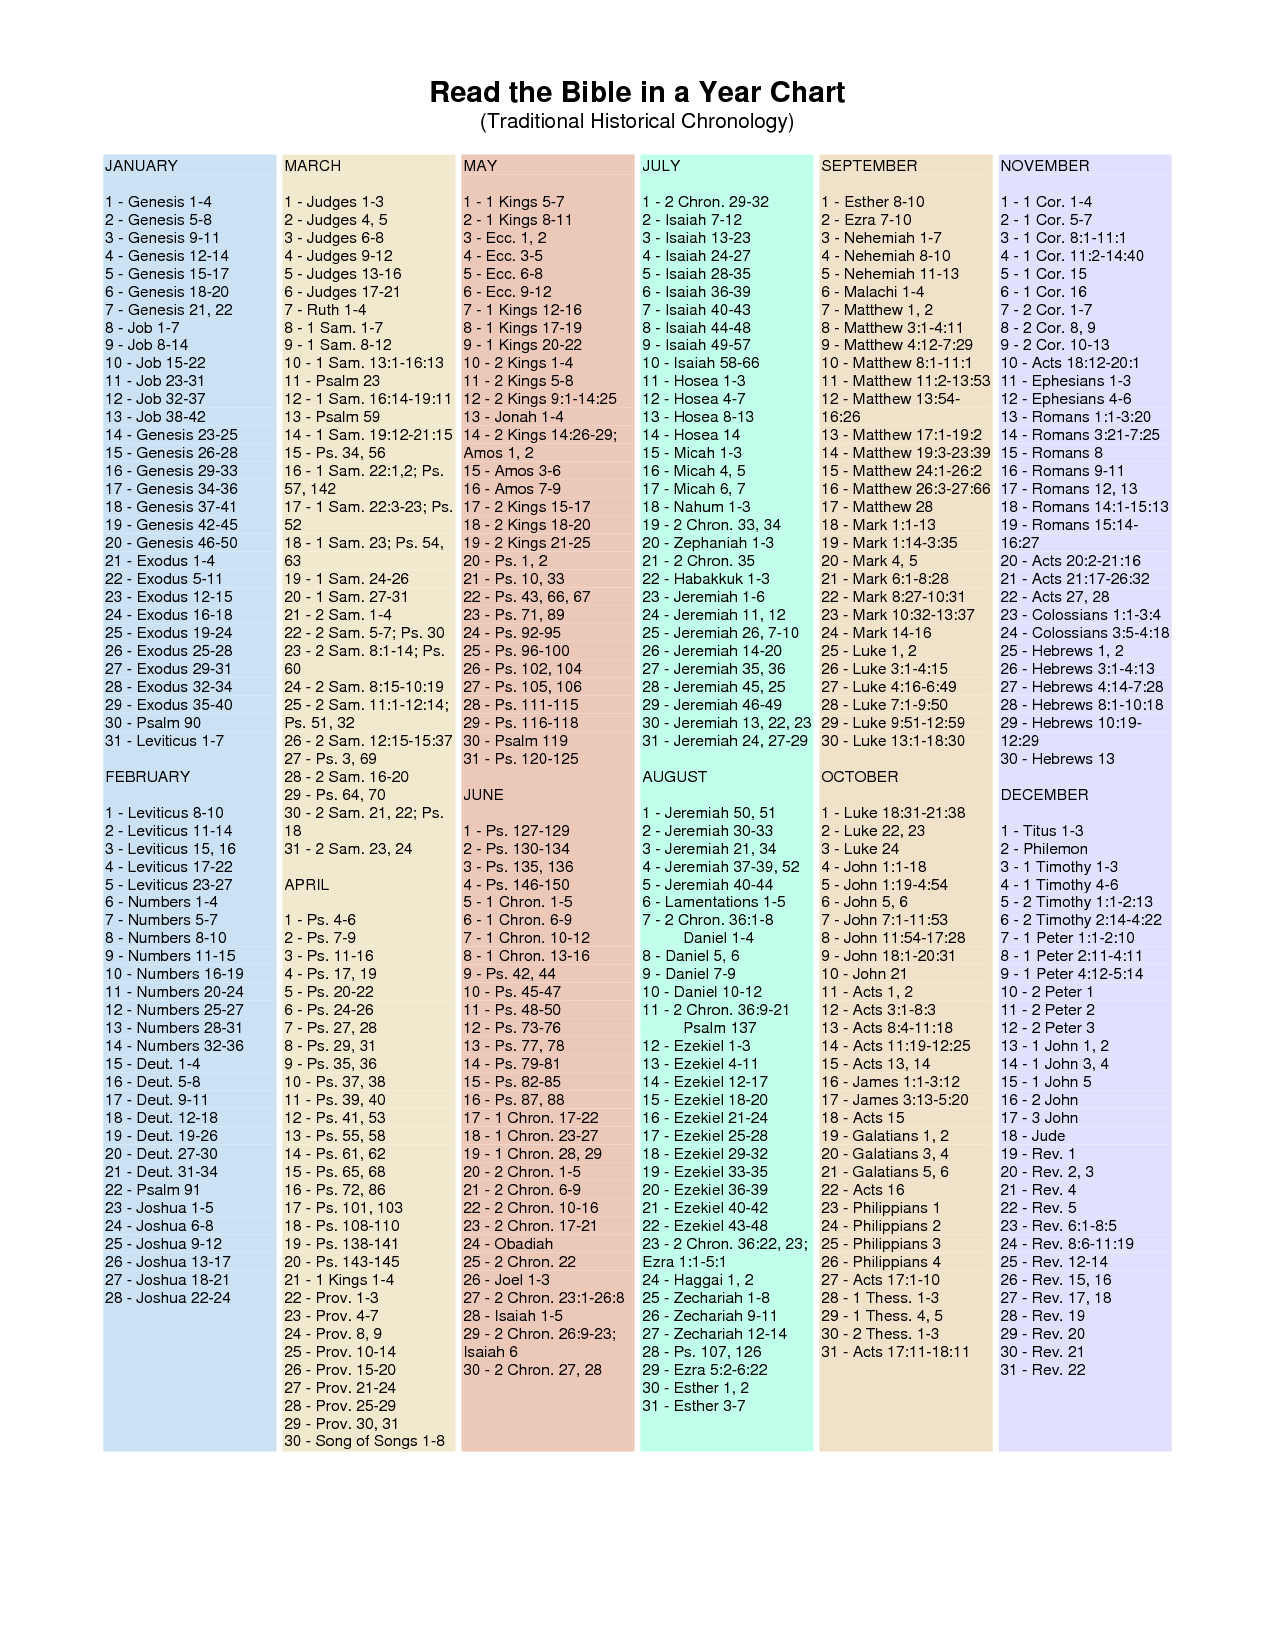 Read The Bible Through In A Year Chart